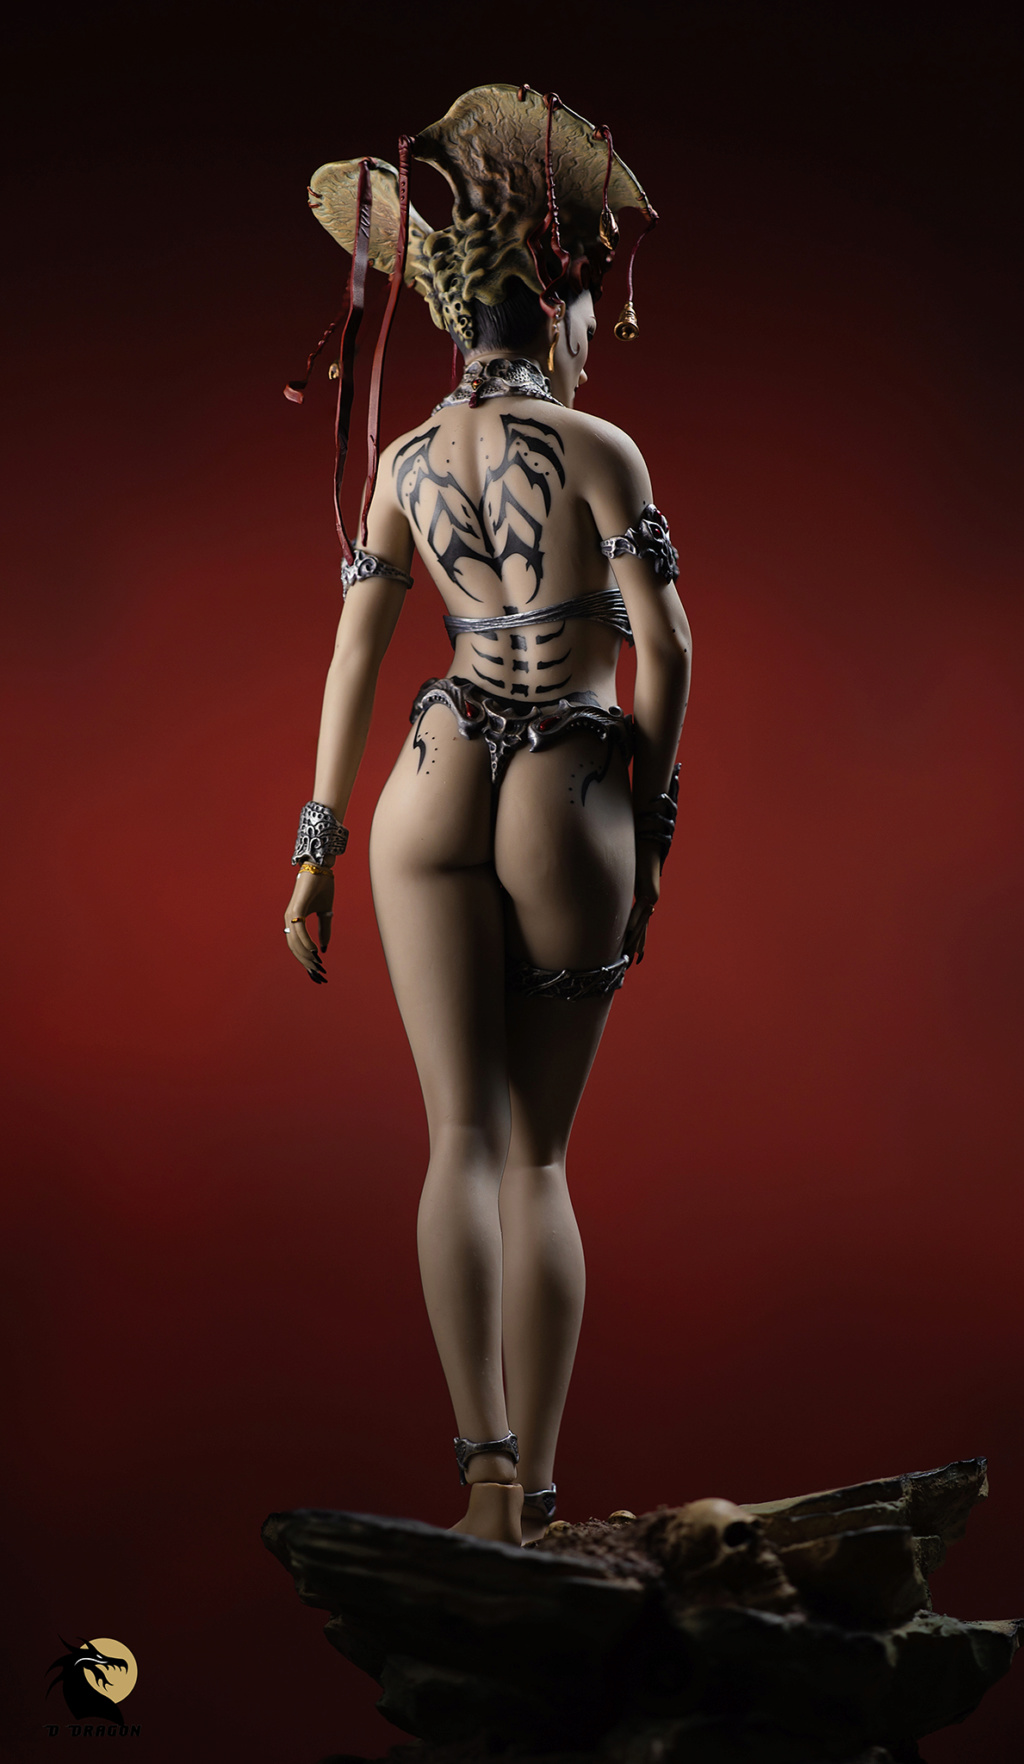 tbleague - NEW PRODUCT: Tbleague x SIDESHOW New: 1/6 Court of the Dead: Gethsemoni The Dead Queen action figure (PL2019-147) - Page 2 Gethse18